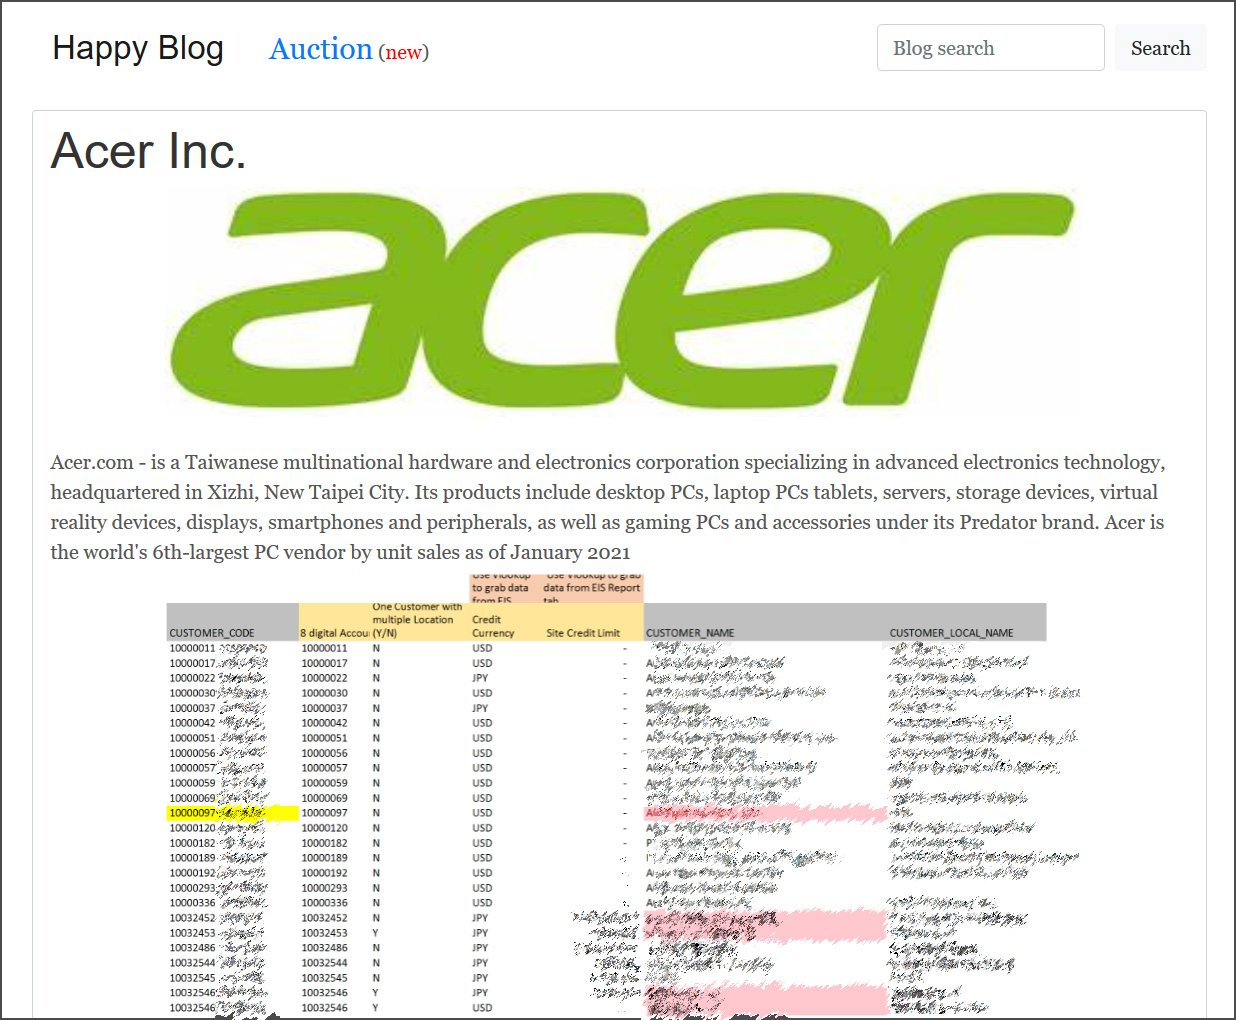 Acer Cyber Attack